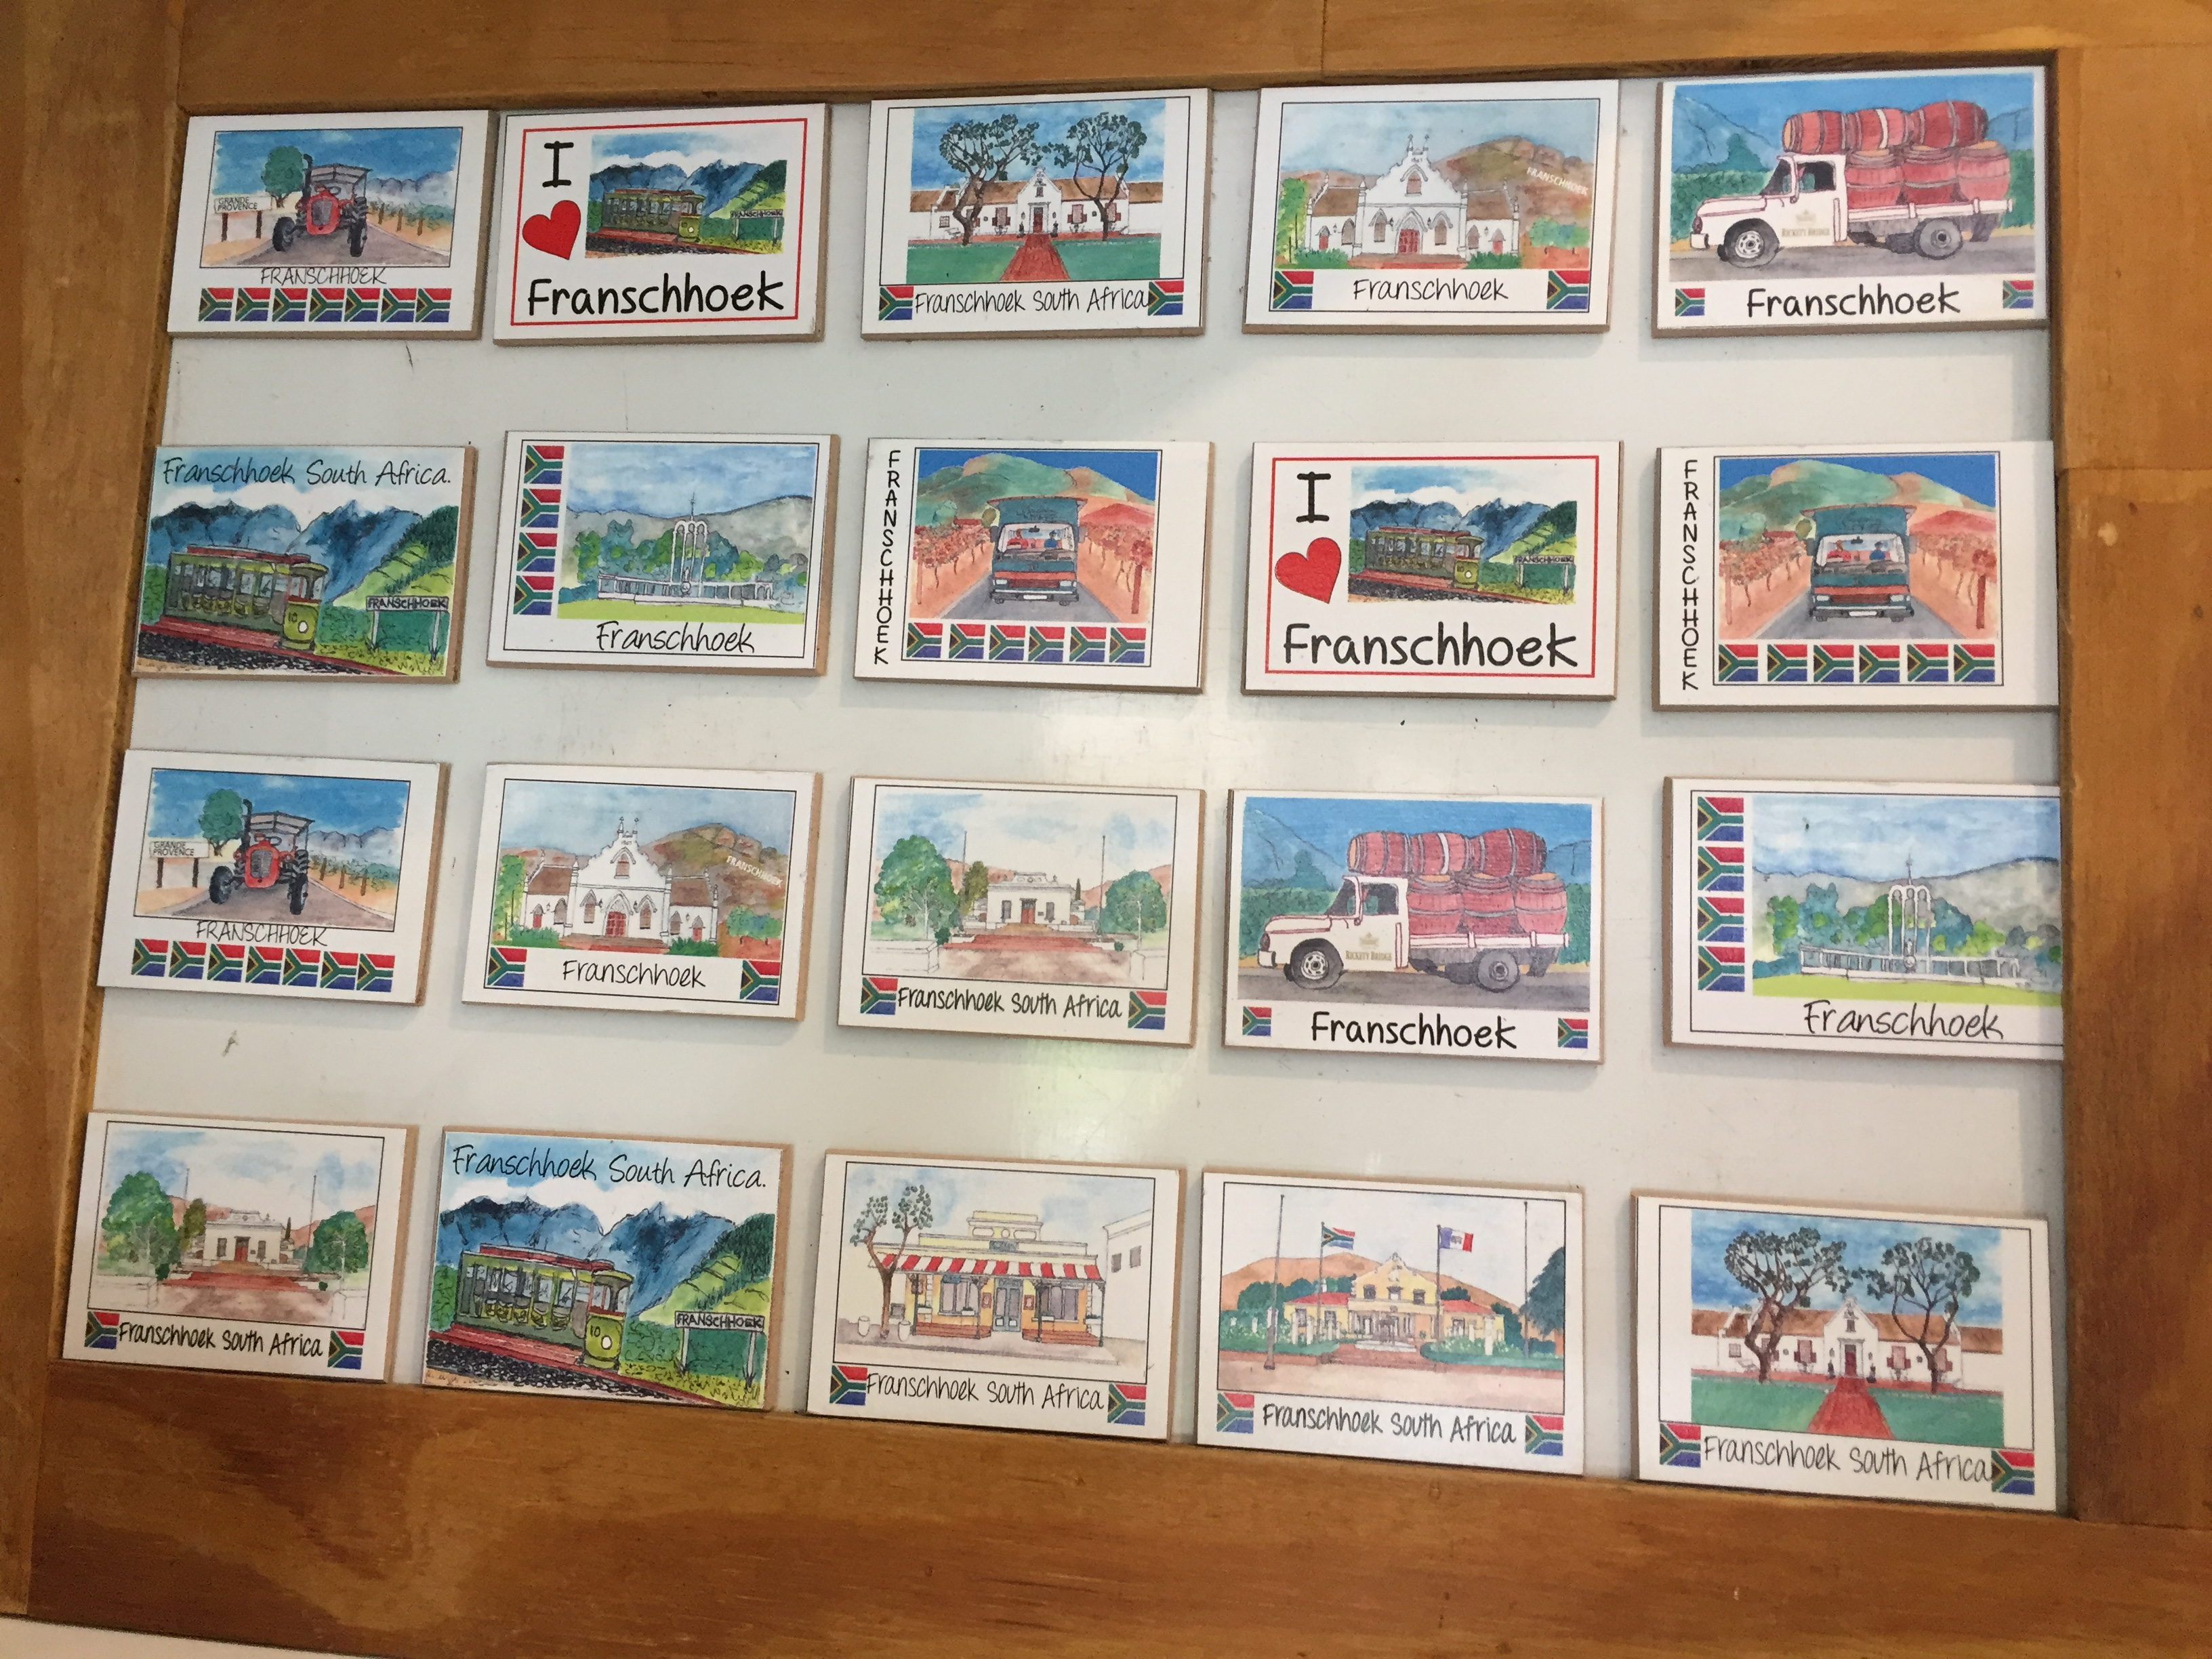 Franschhoek wooden magnets